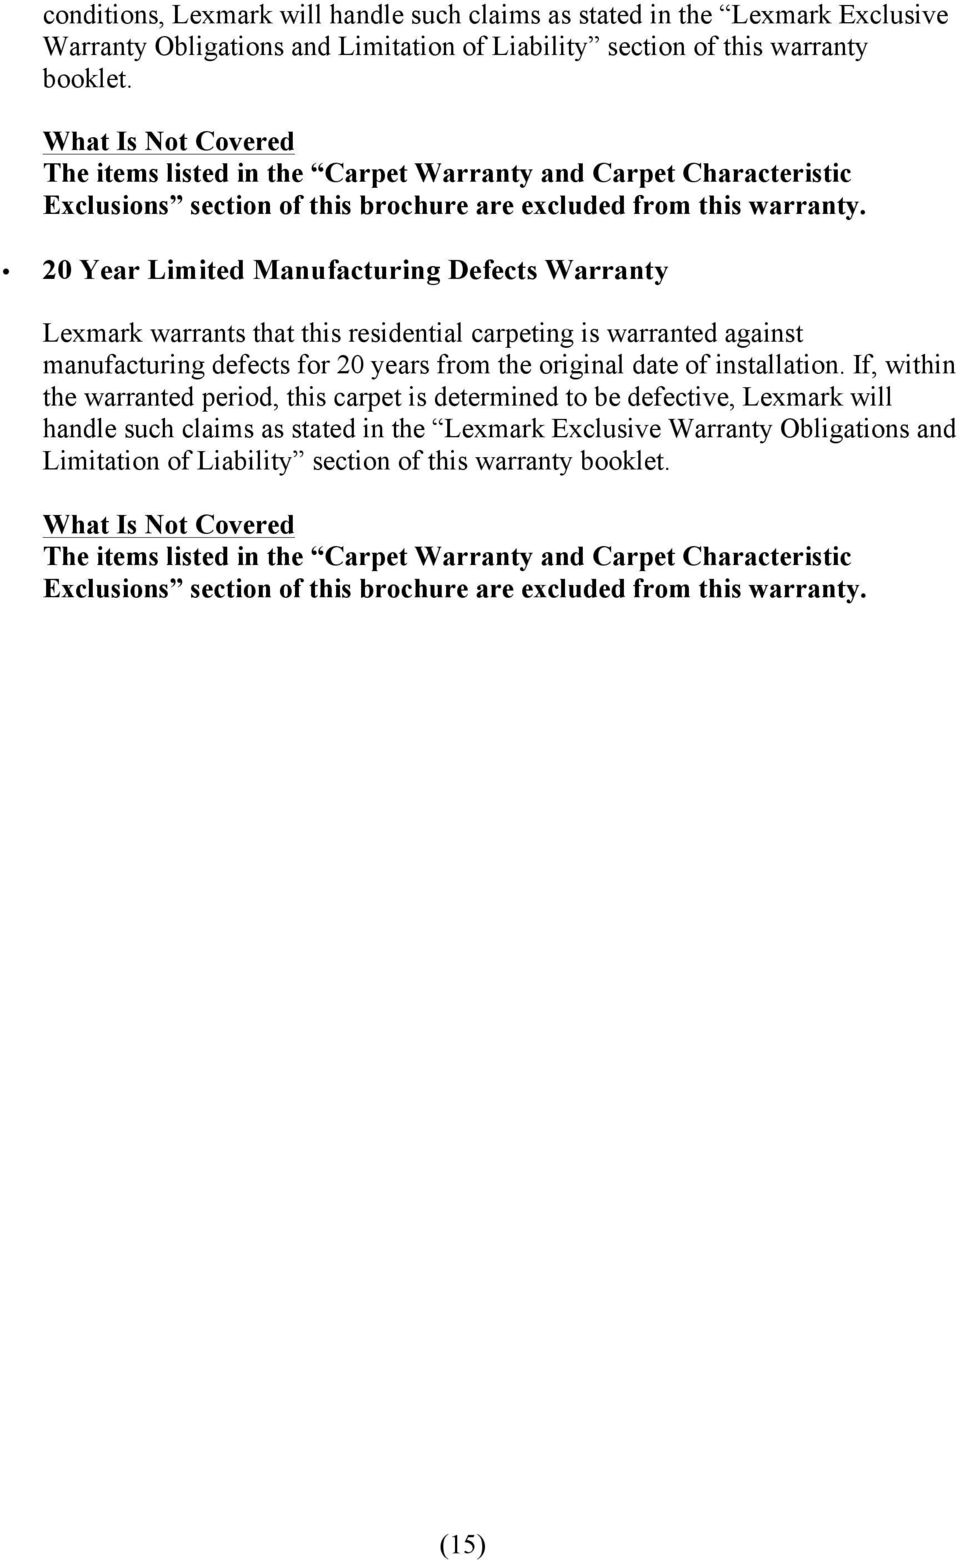 20 Year Limited Manufacturing Defects Warranty Lexmark warrants that this residential carpeting is warranted against manufacturing defects for 20 years from the original date of installation.